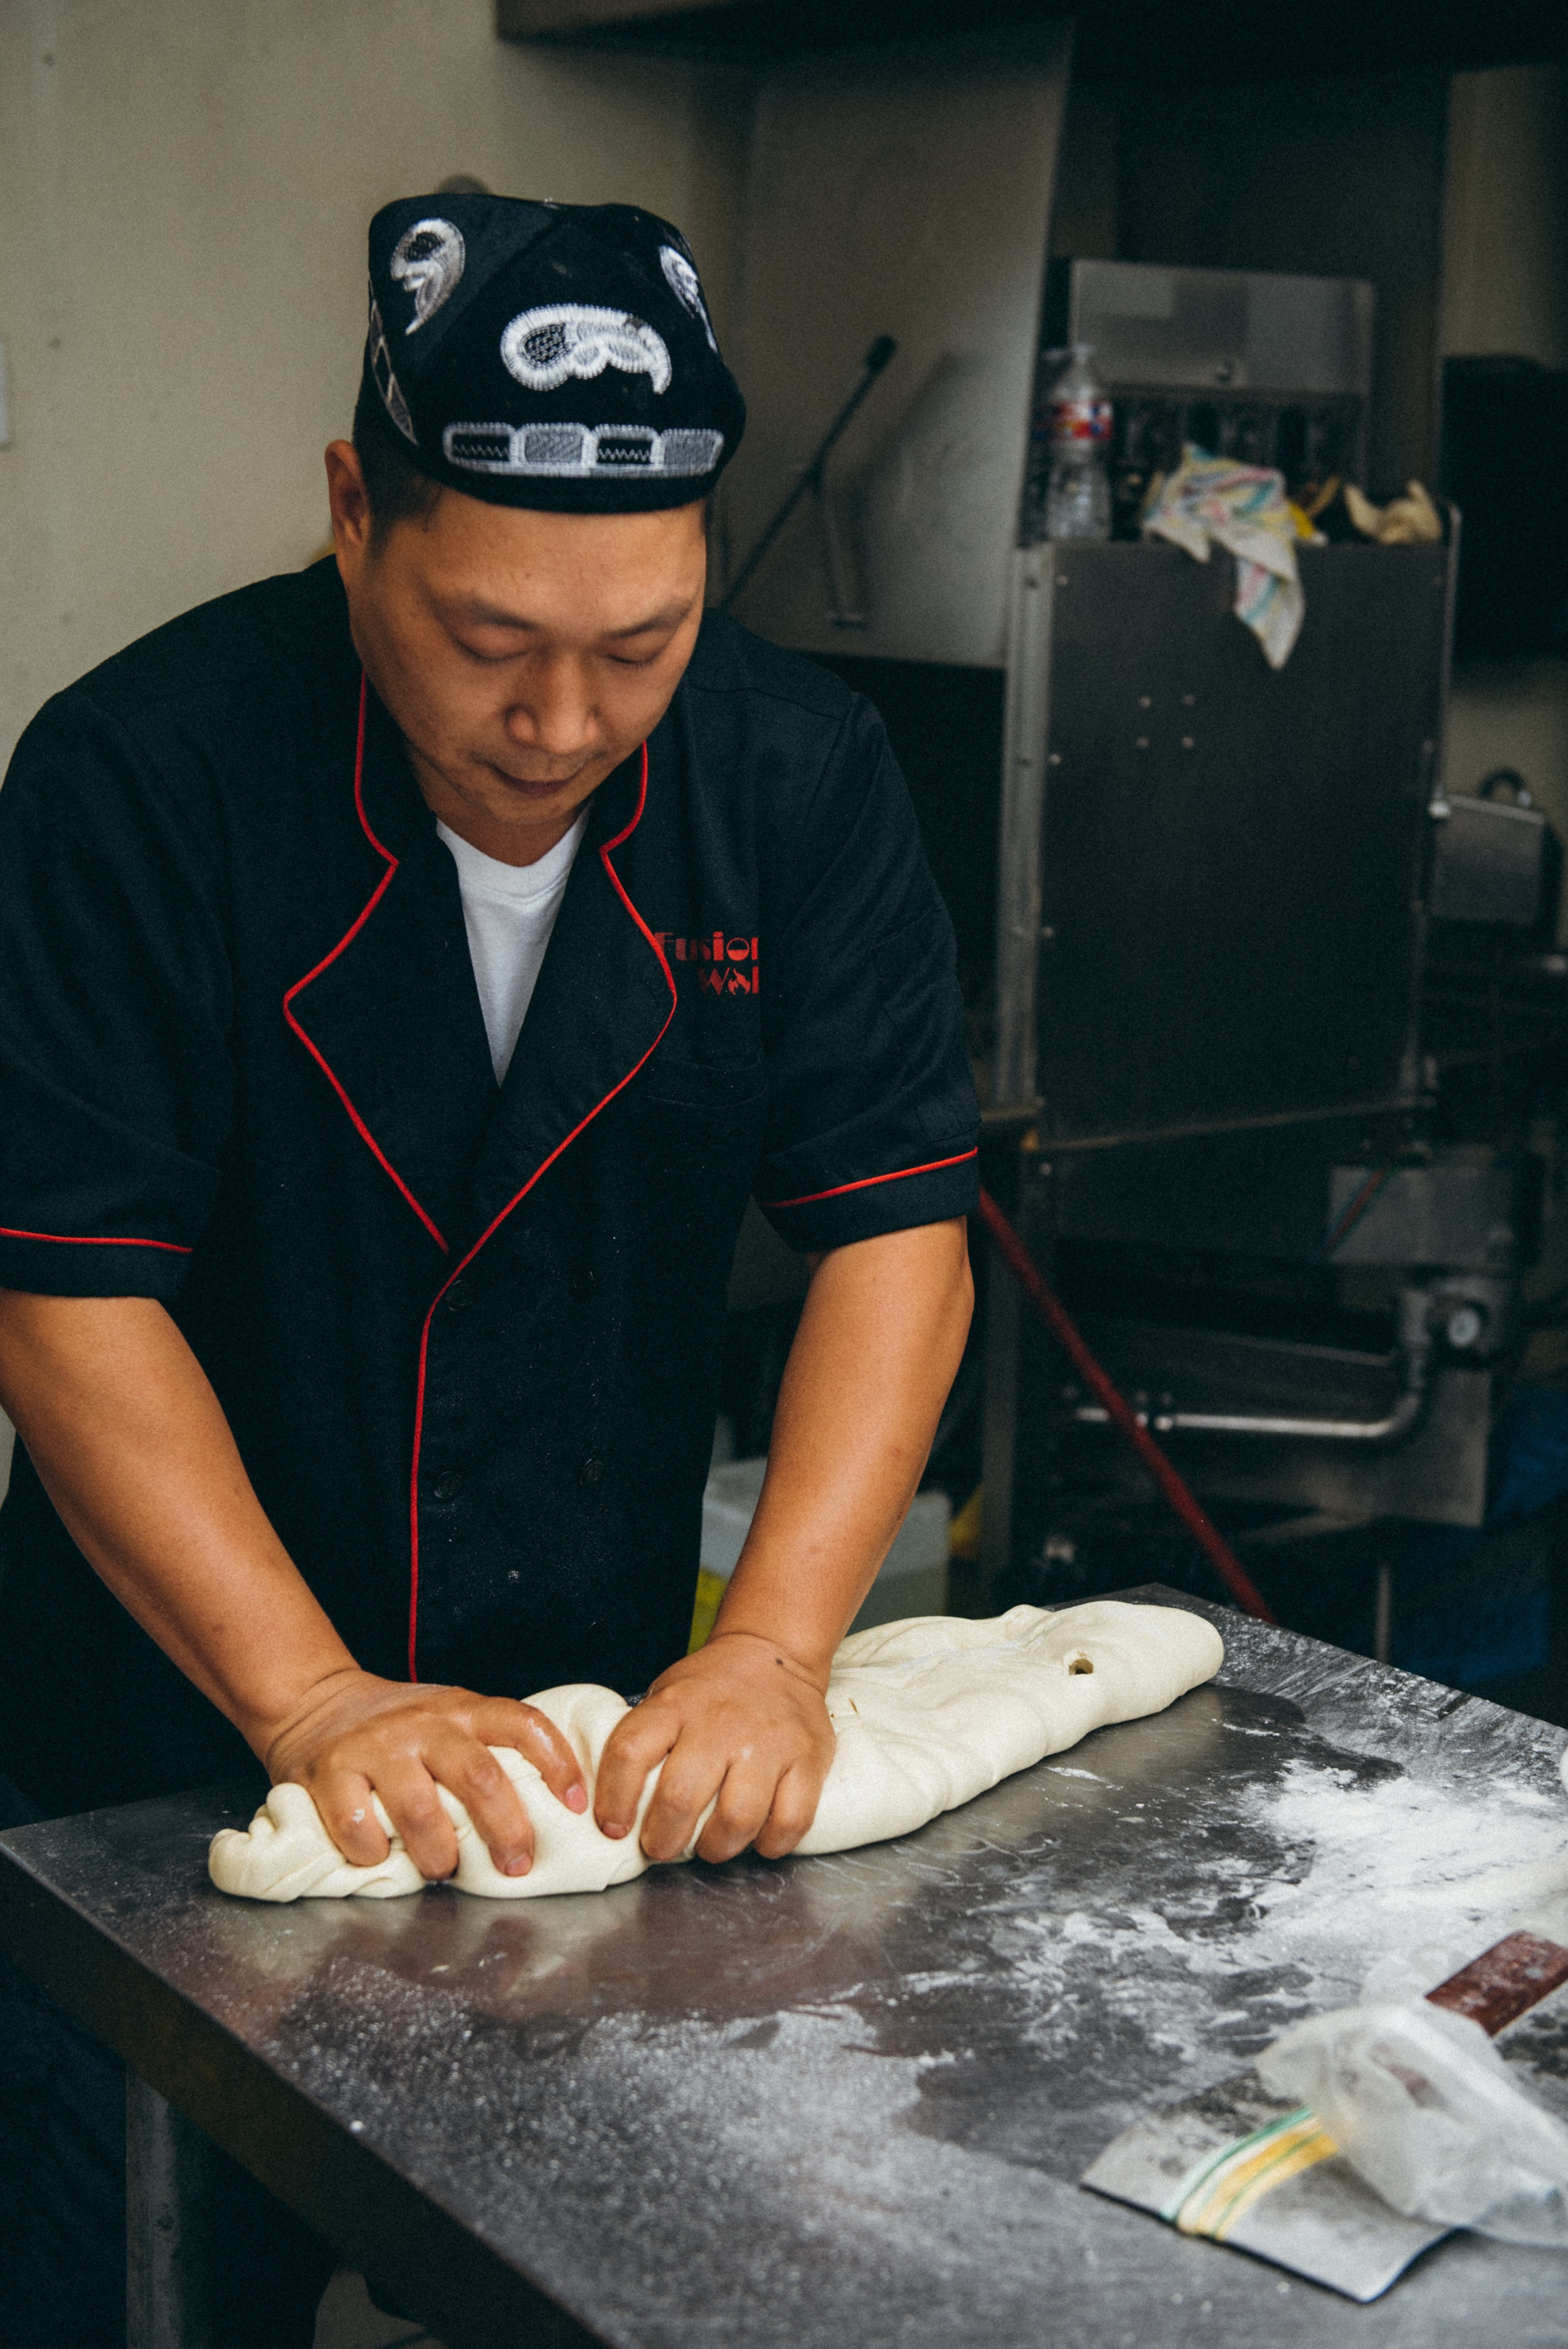 2. Noodles begin as a lump of dough that is made fresh every day.